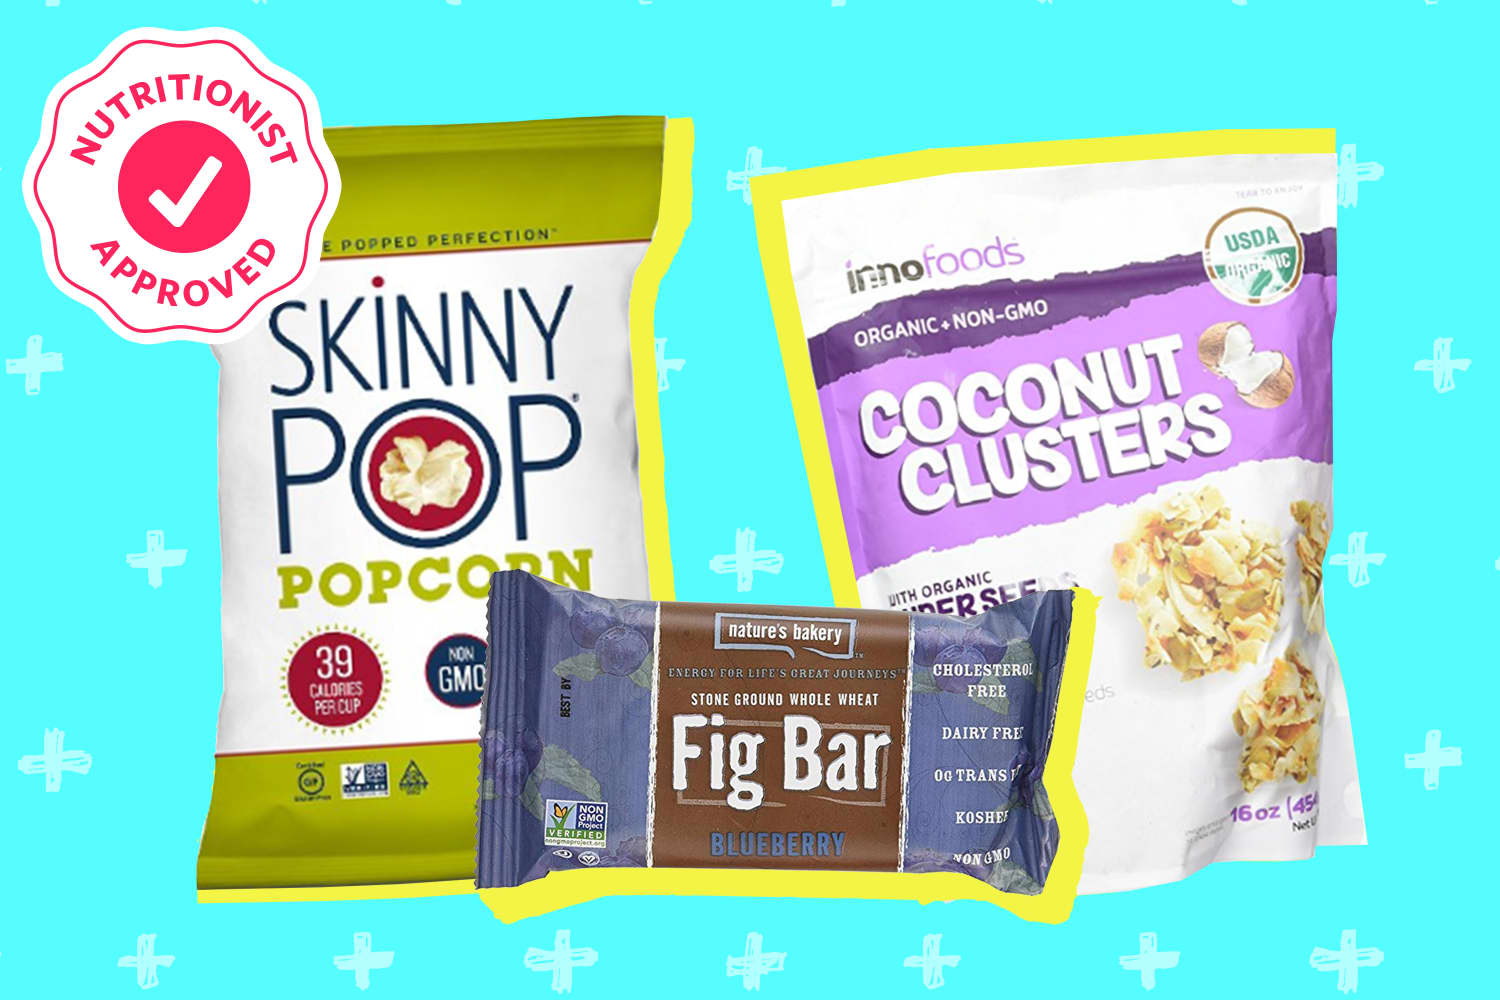 The 10 Lunch Box Snacks This Nutritionist Always Buys at Costco